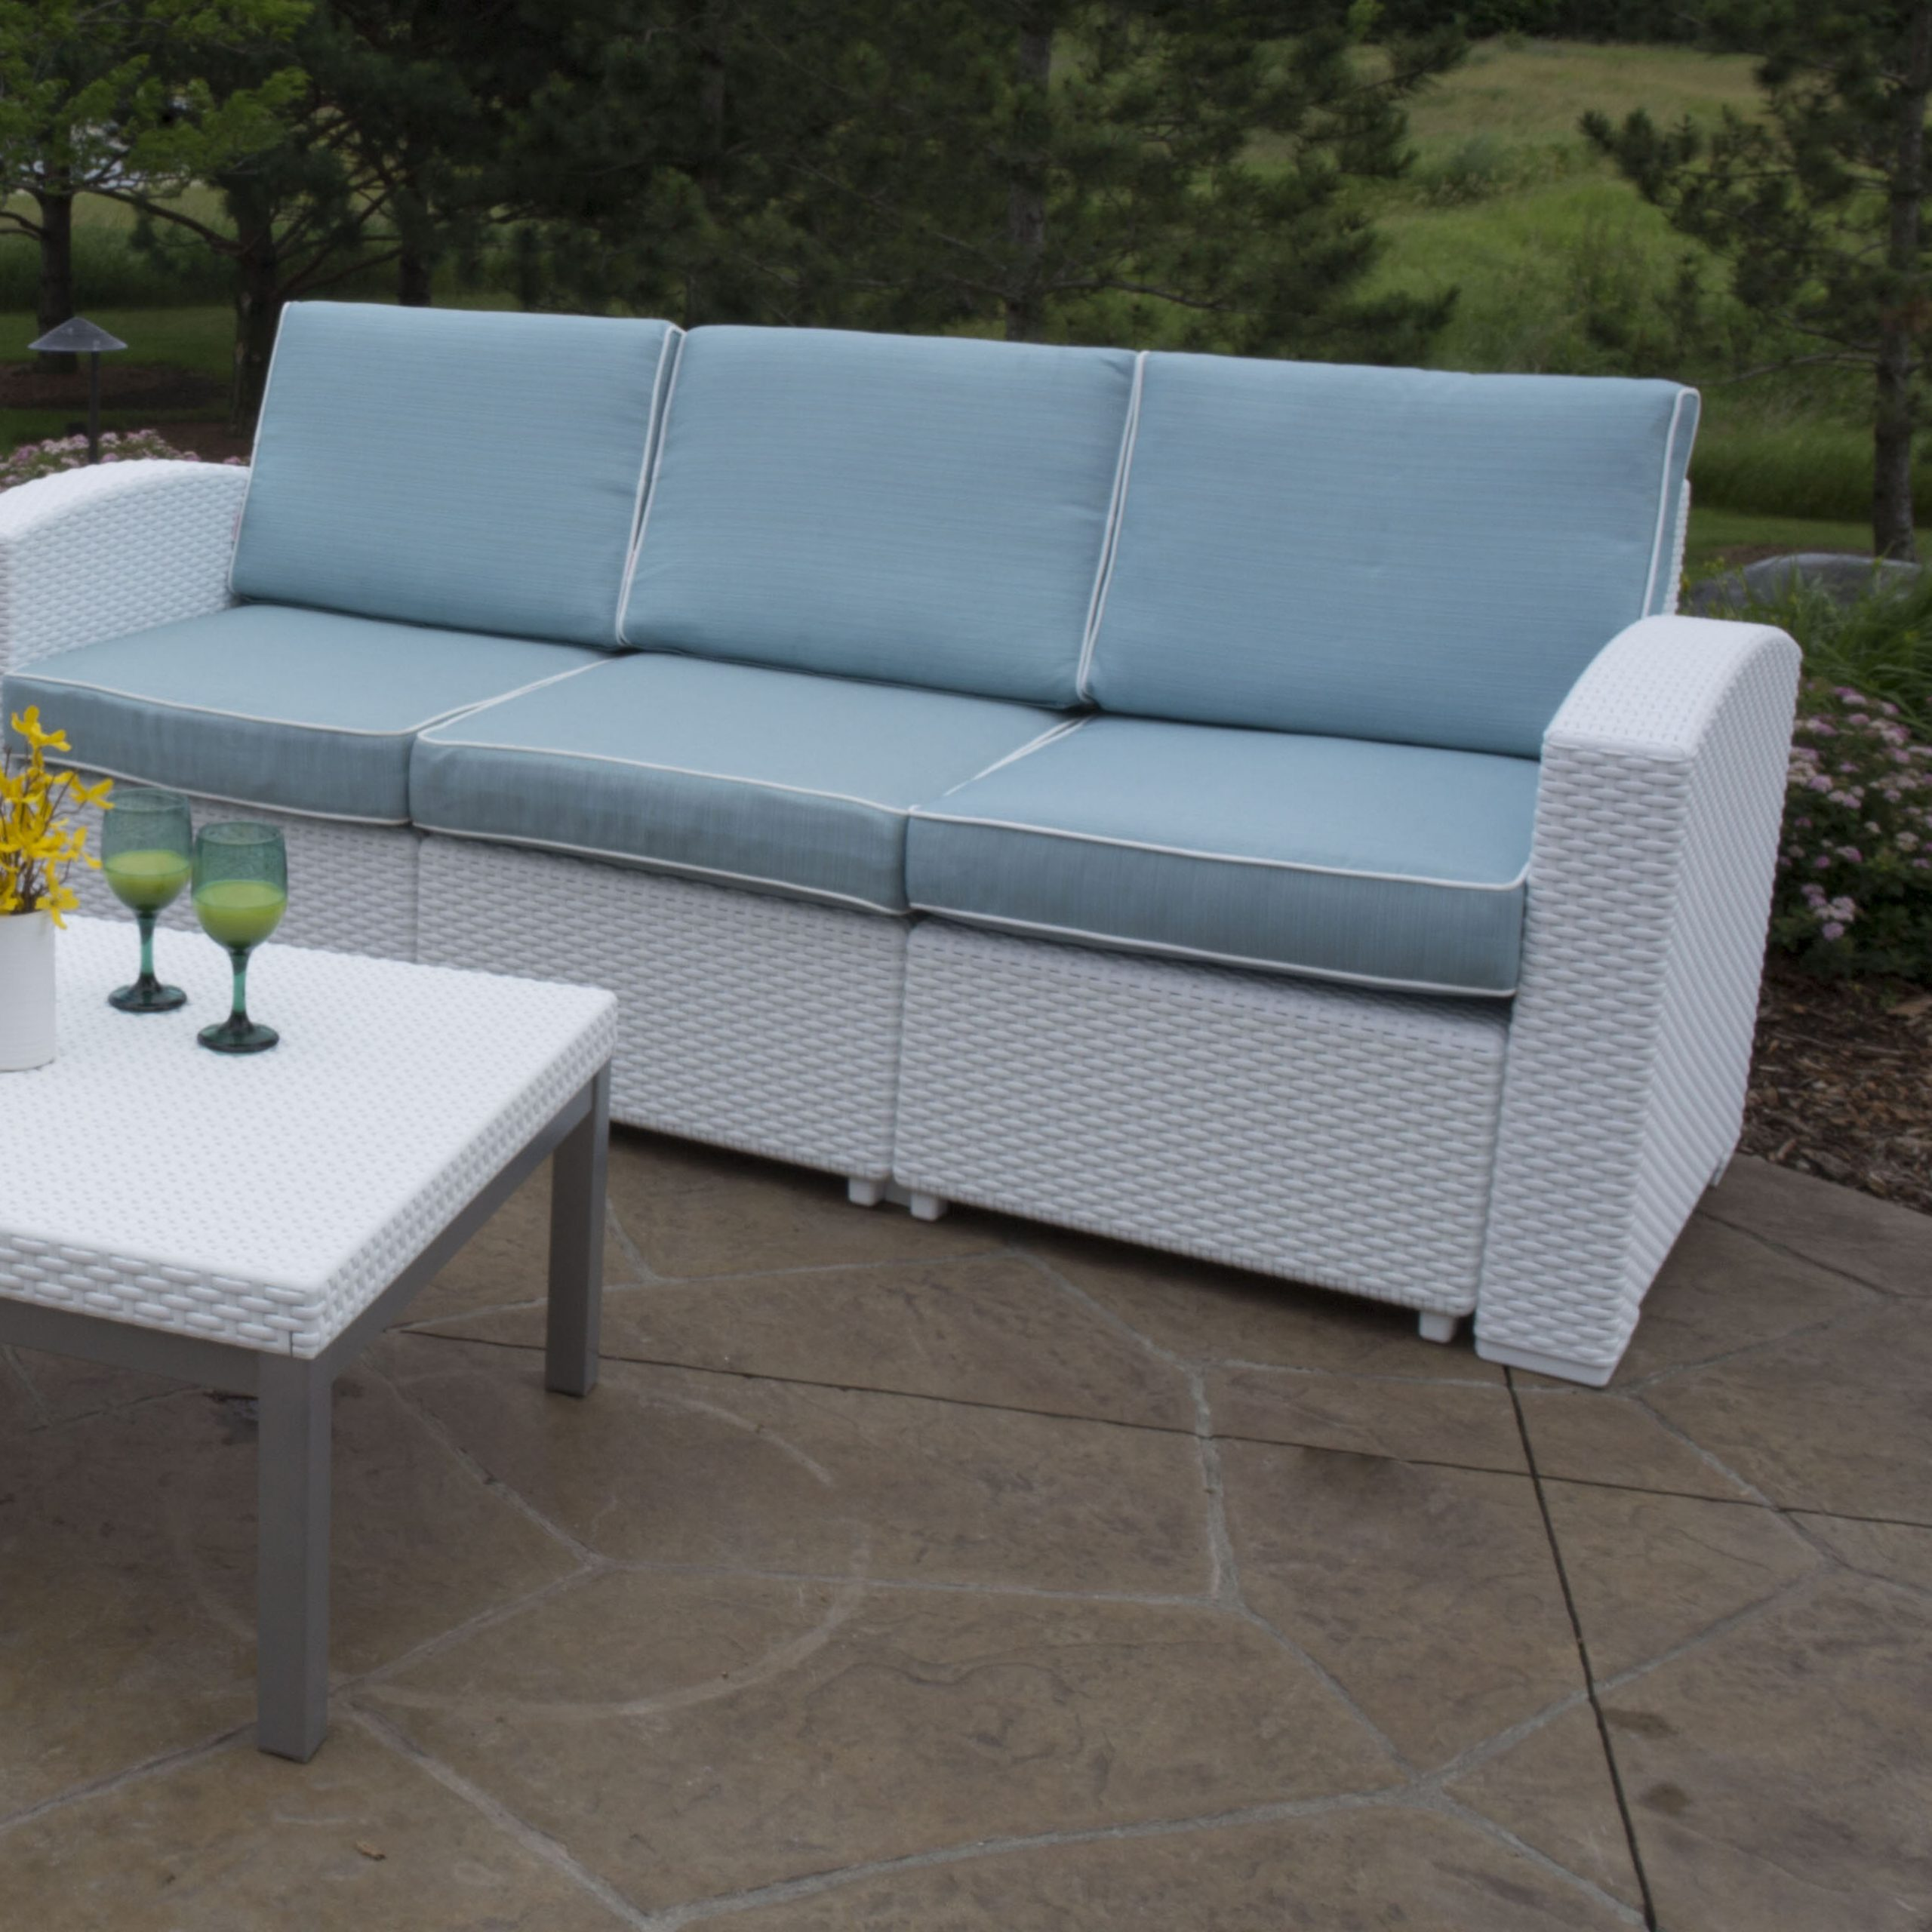 Saleem Loveseats With Cushions In Best And Newest Loggins Patio Sofa With Cushions (View 17 of 25)